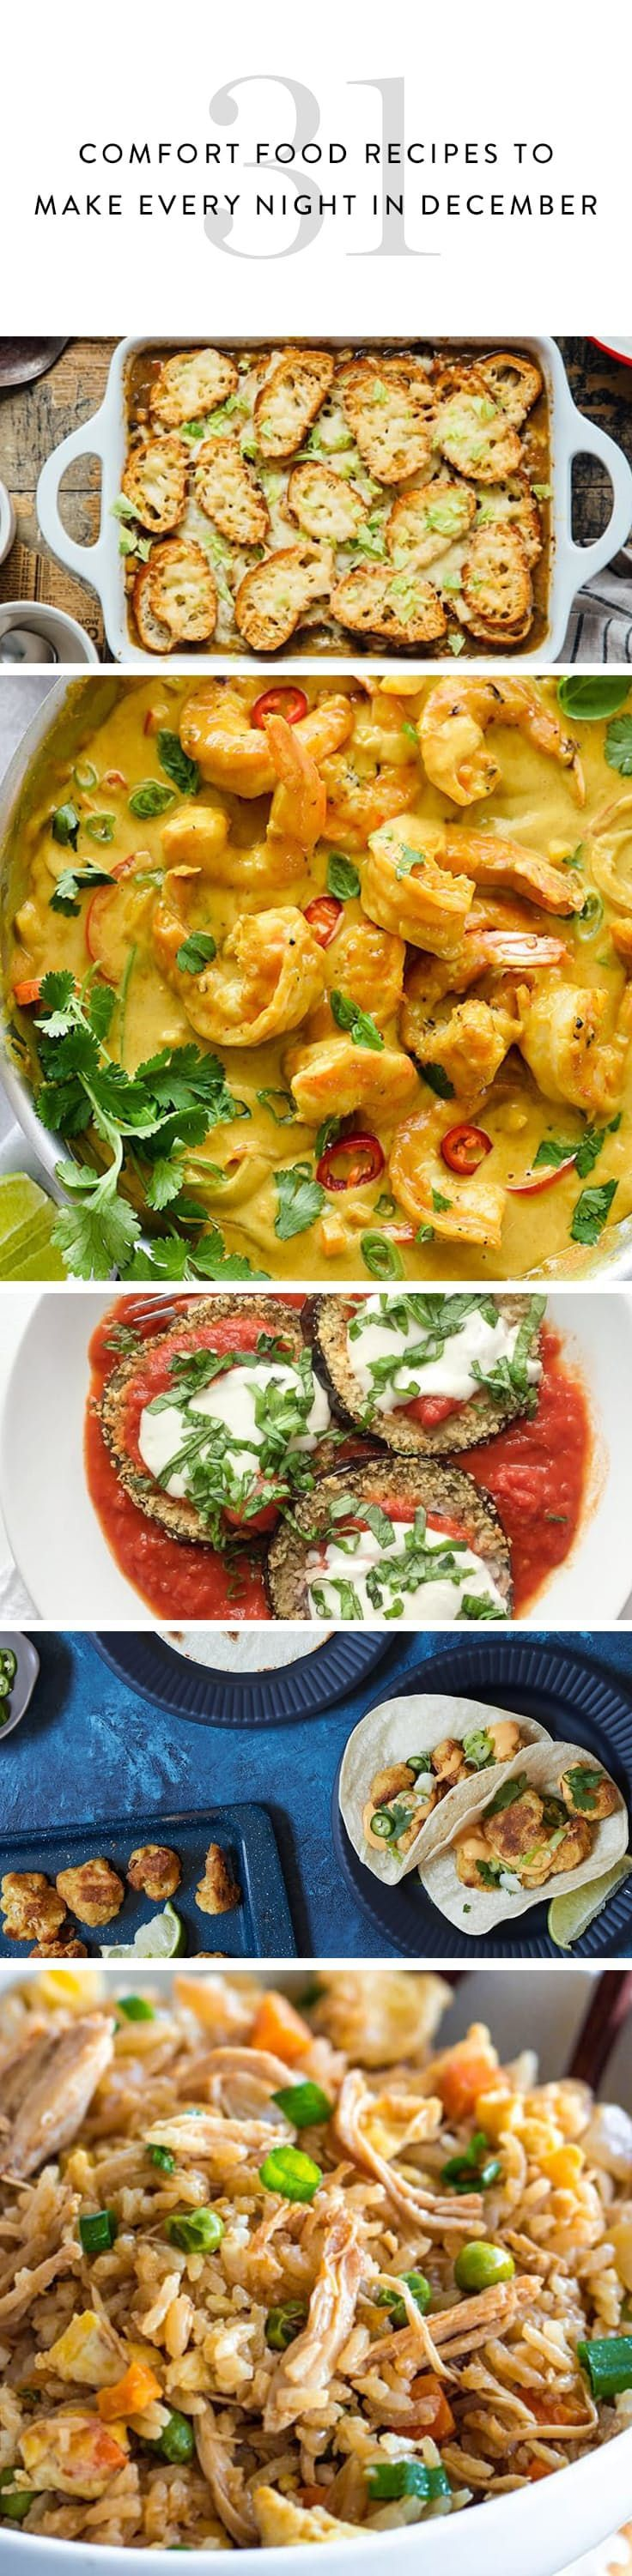 31 Comfort Food Recipes to Make Every Night in December via @PureWow #dinner #lbloggers #bloggers